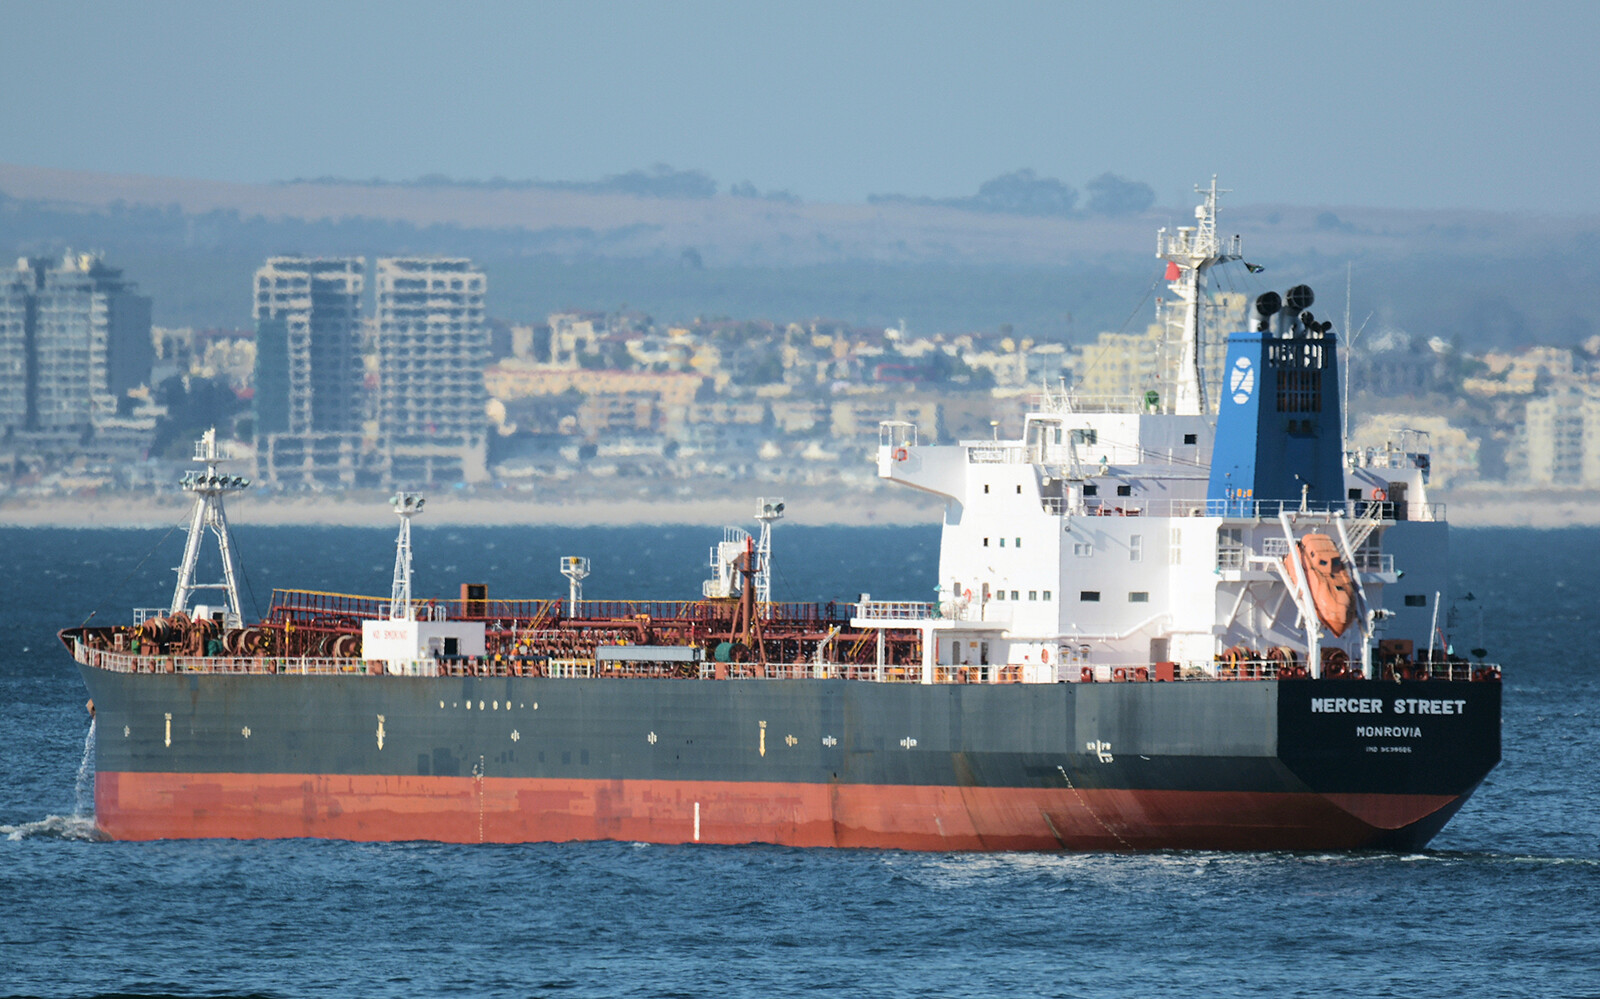 <i>Johan Victor/AP</i><br/>Two crewmembers died when a tanker connected to an Israeli billionaire was attacked off the coast of Oman